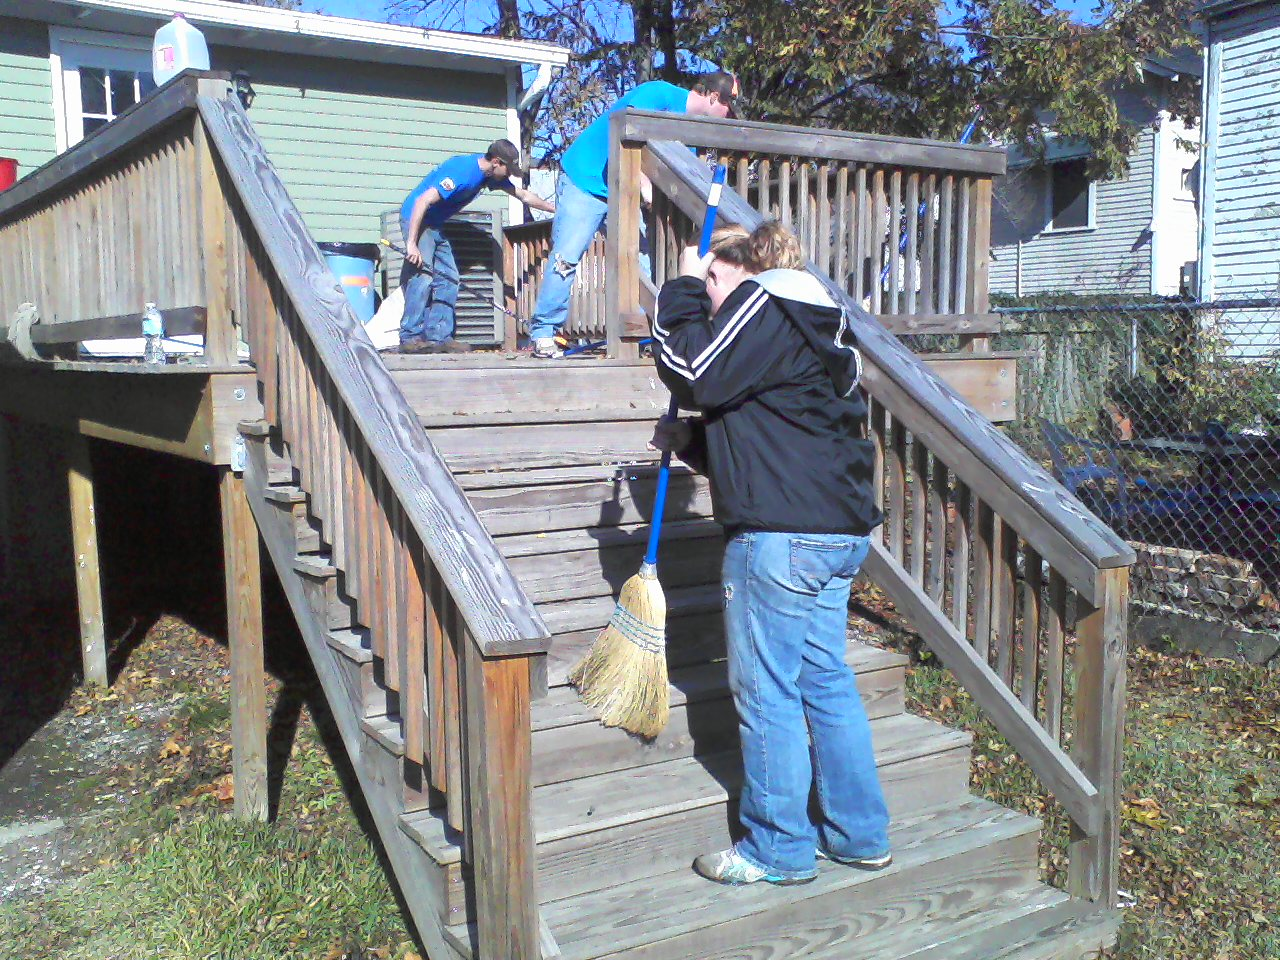 The Coyotes tackled other tasks too, like sweeping the back porch...